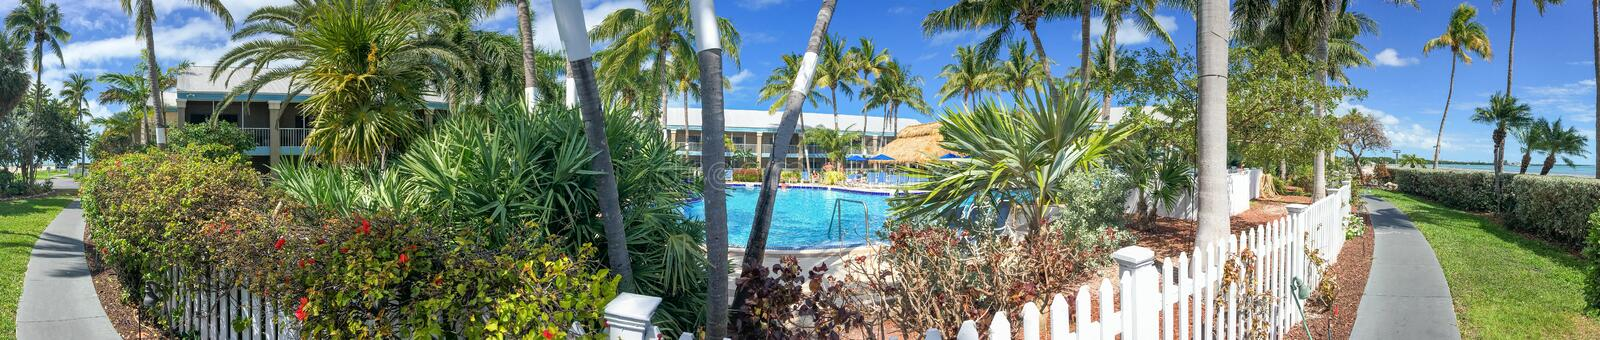 Beautiful coastline of Key West, panoramic view of Florida Keys stock images